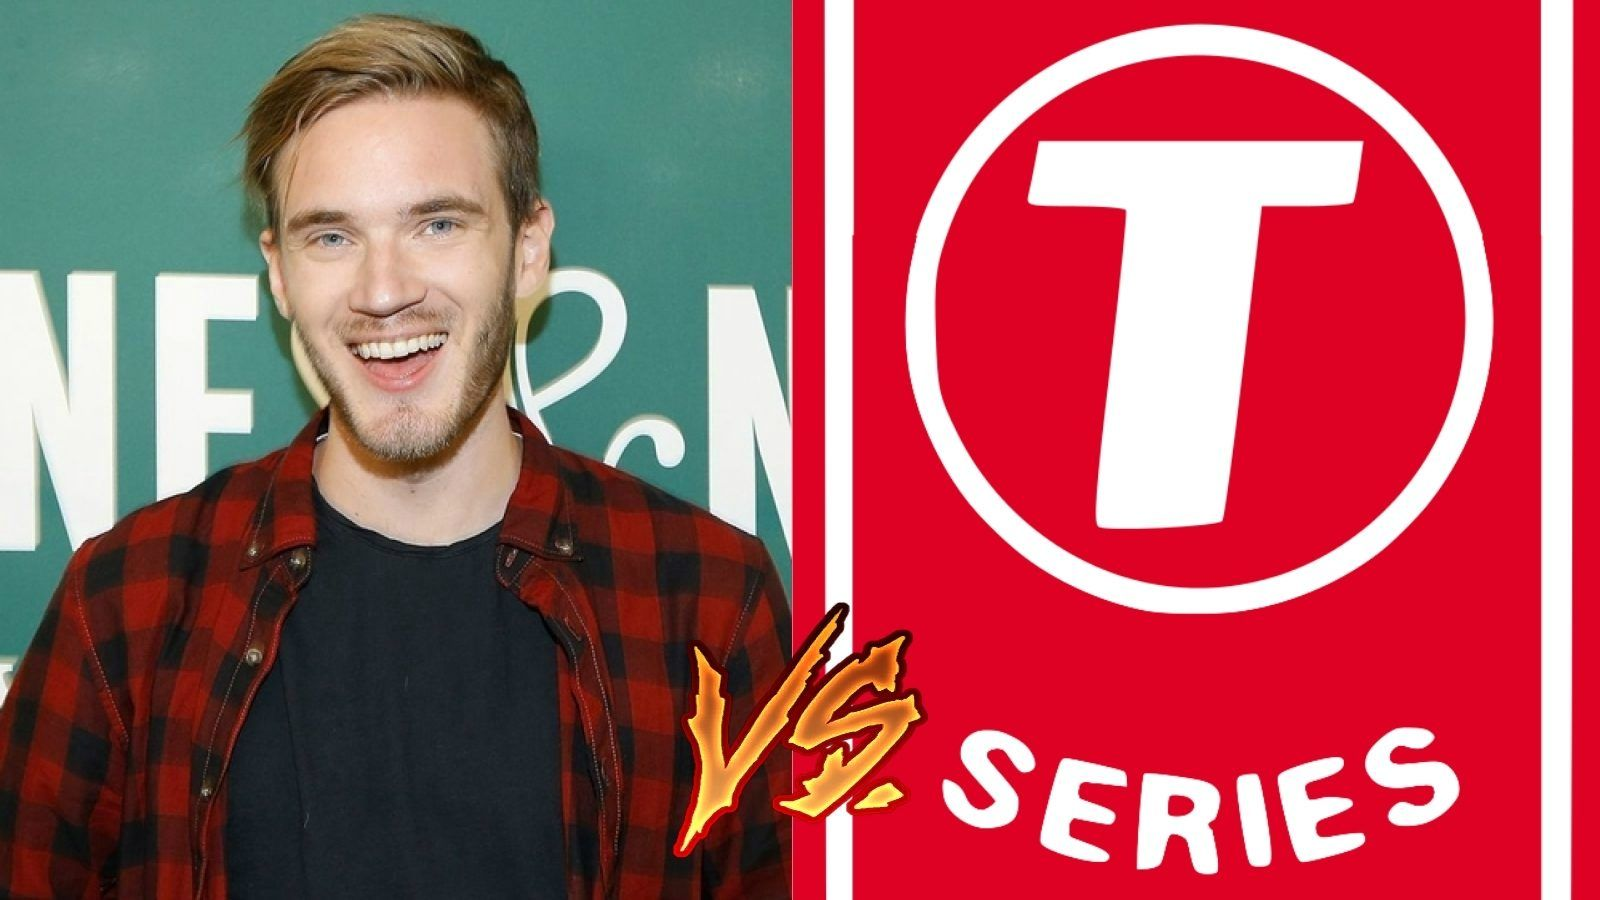 Madghosts Share Anything Pewdiepie Cool Pictures Cool Photos